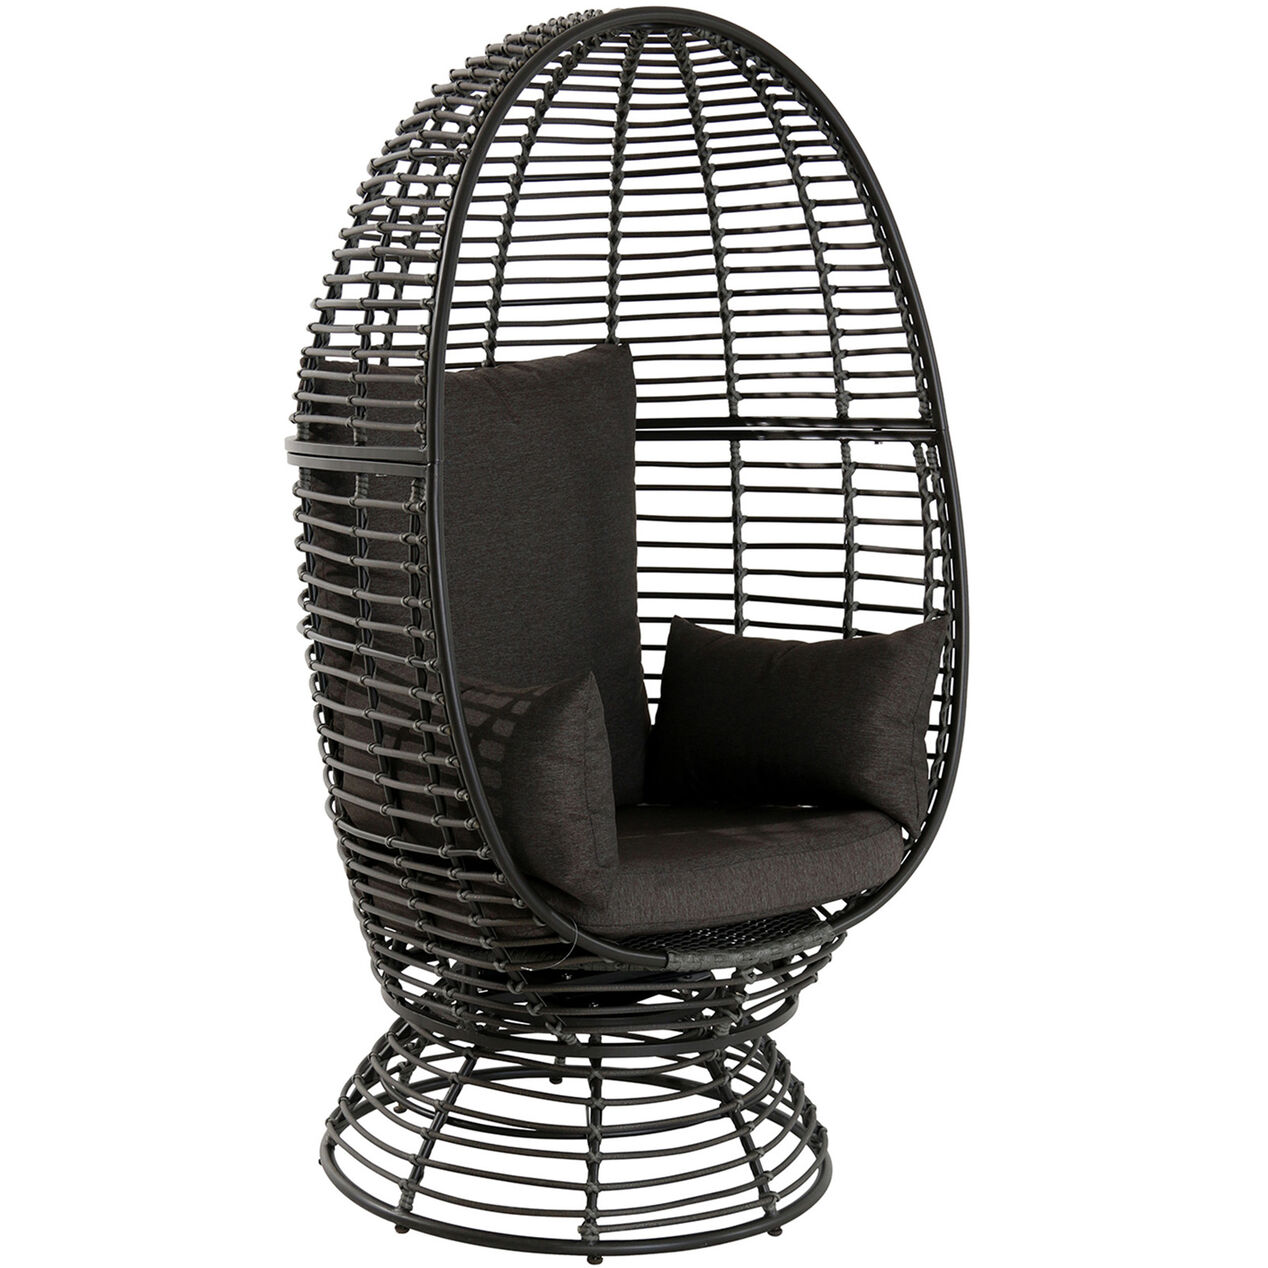 Astounding Foster Wicker Swivel Egg Chair Brown At Home 4 2 1 Frankydiablos Diy Chair Ideas Frankydiabloscom